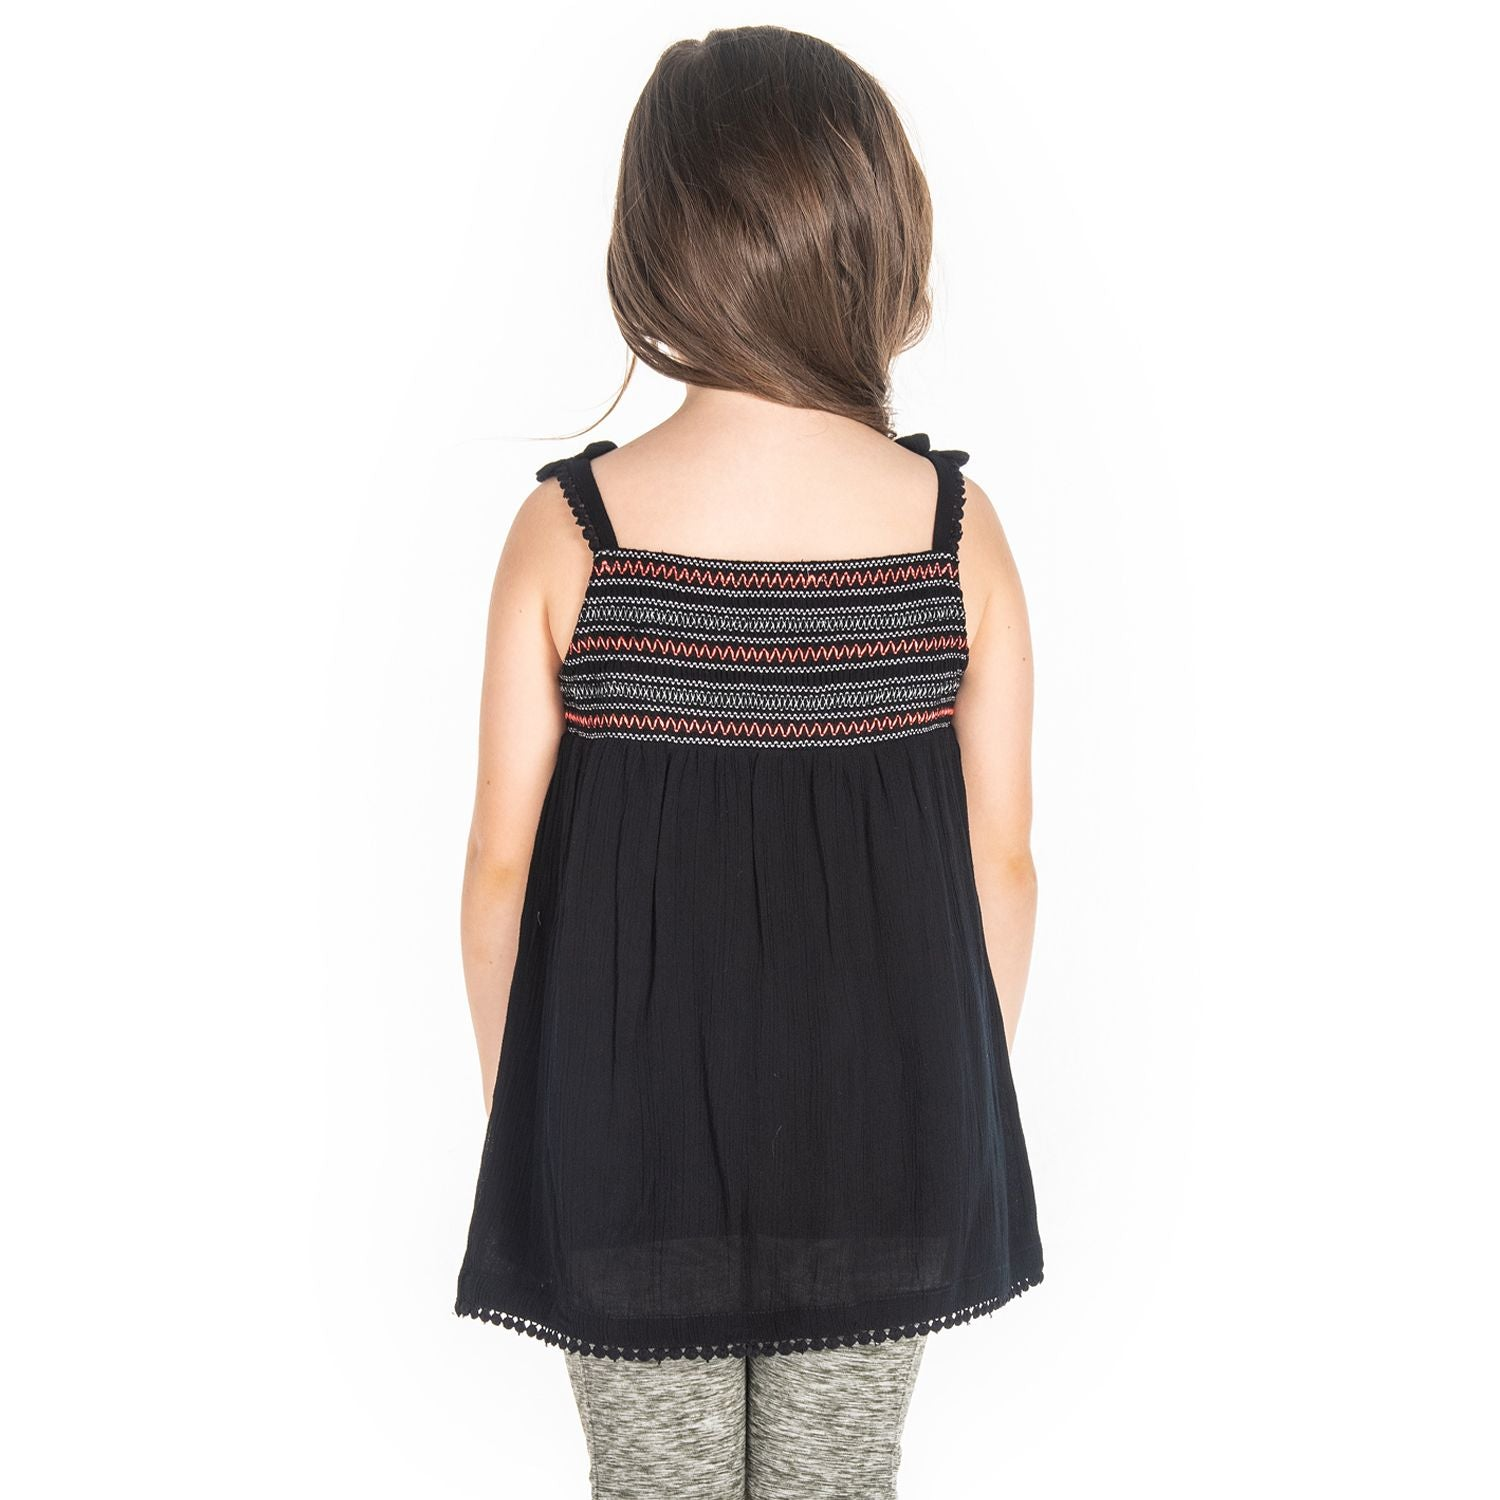 Paris Top for Girls